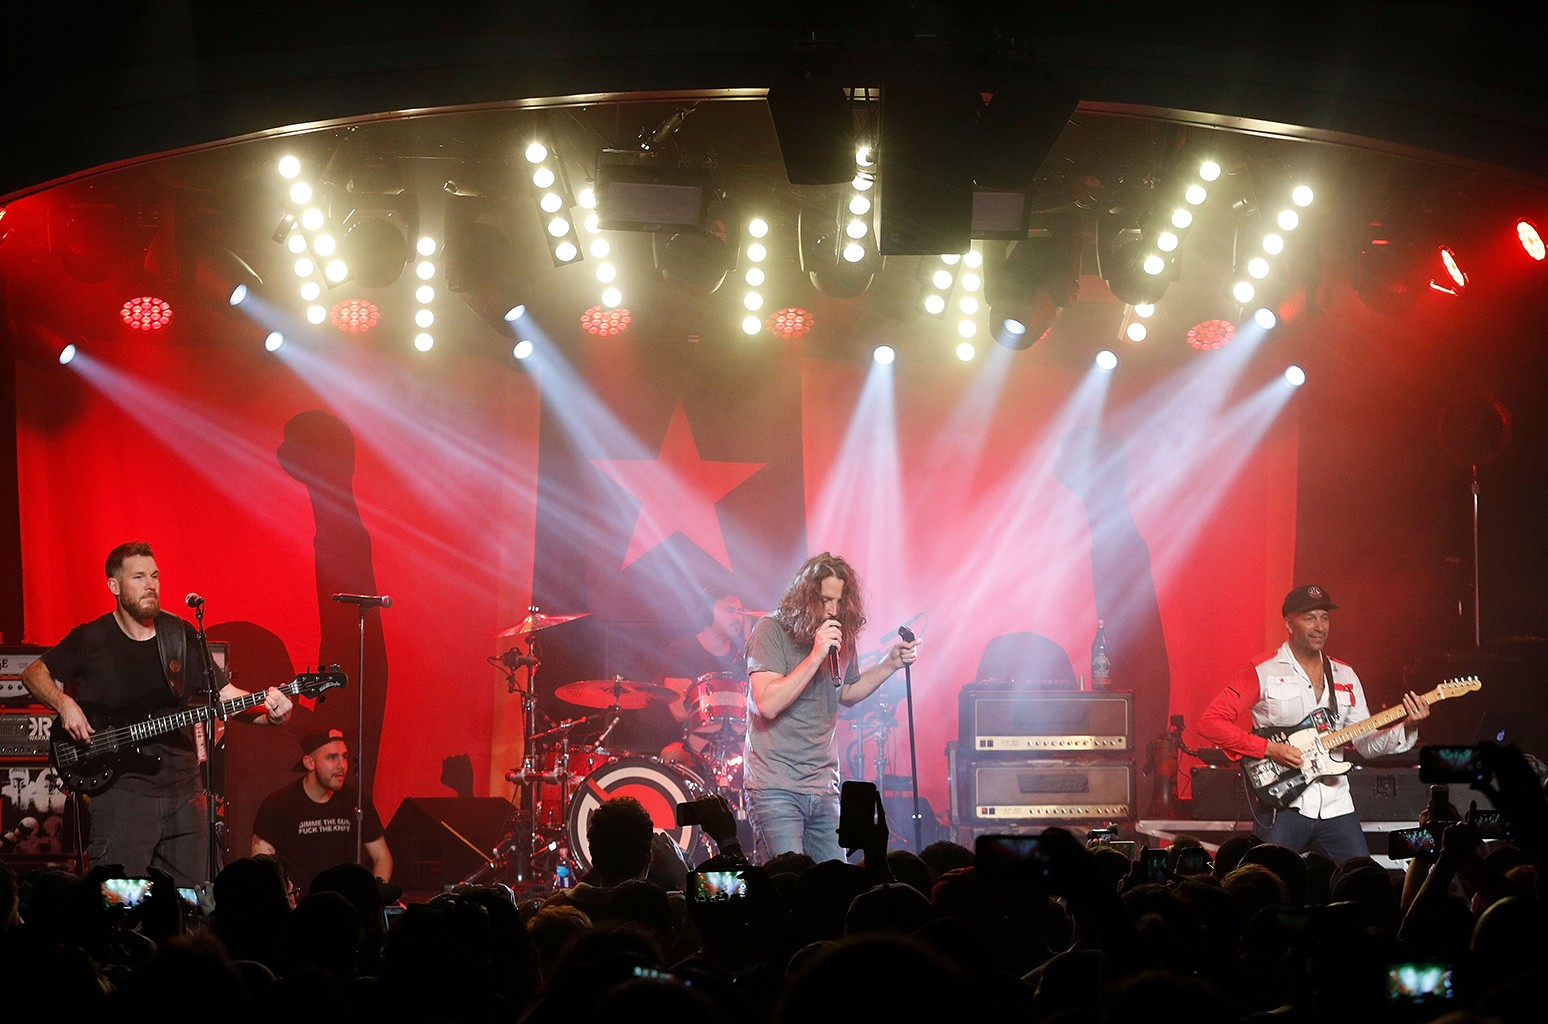 Tim Commerford, Brad Wilk, Chris Cornell and Tom Morello of Audioslave perform during the Prophets Of Rage And Friends' Anti-Inaugural Ball at Teragram Ballroom on January 20, 2017 in Los Angeles, California.  (Photo by Taylor Hill/FilmMagic)